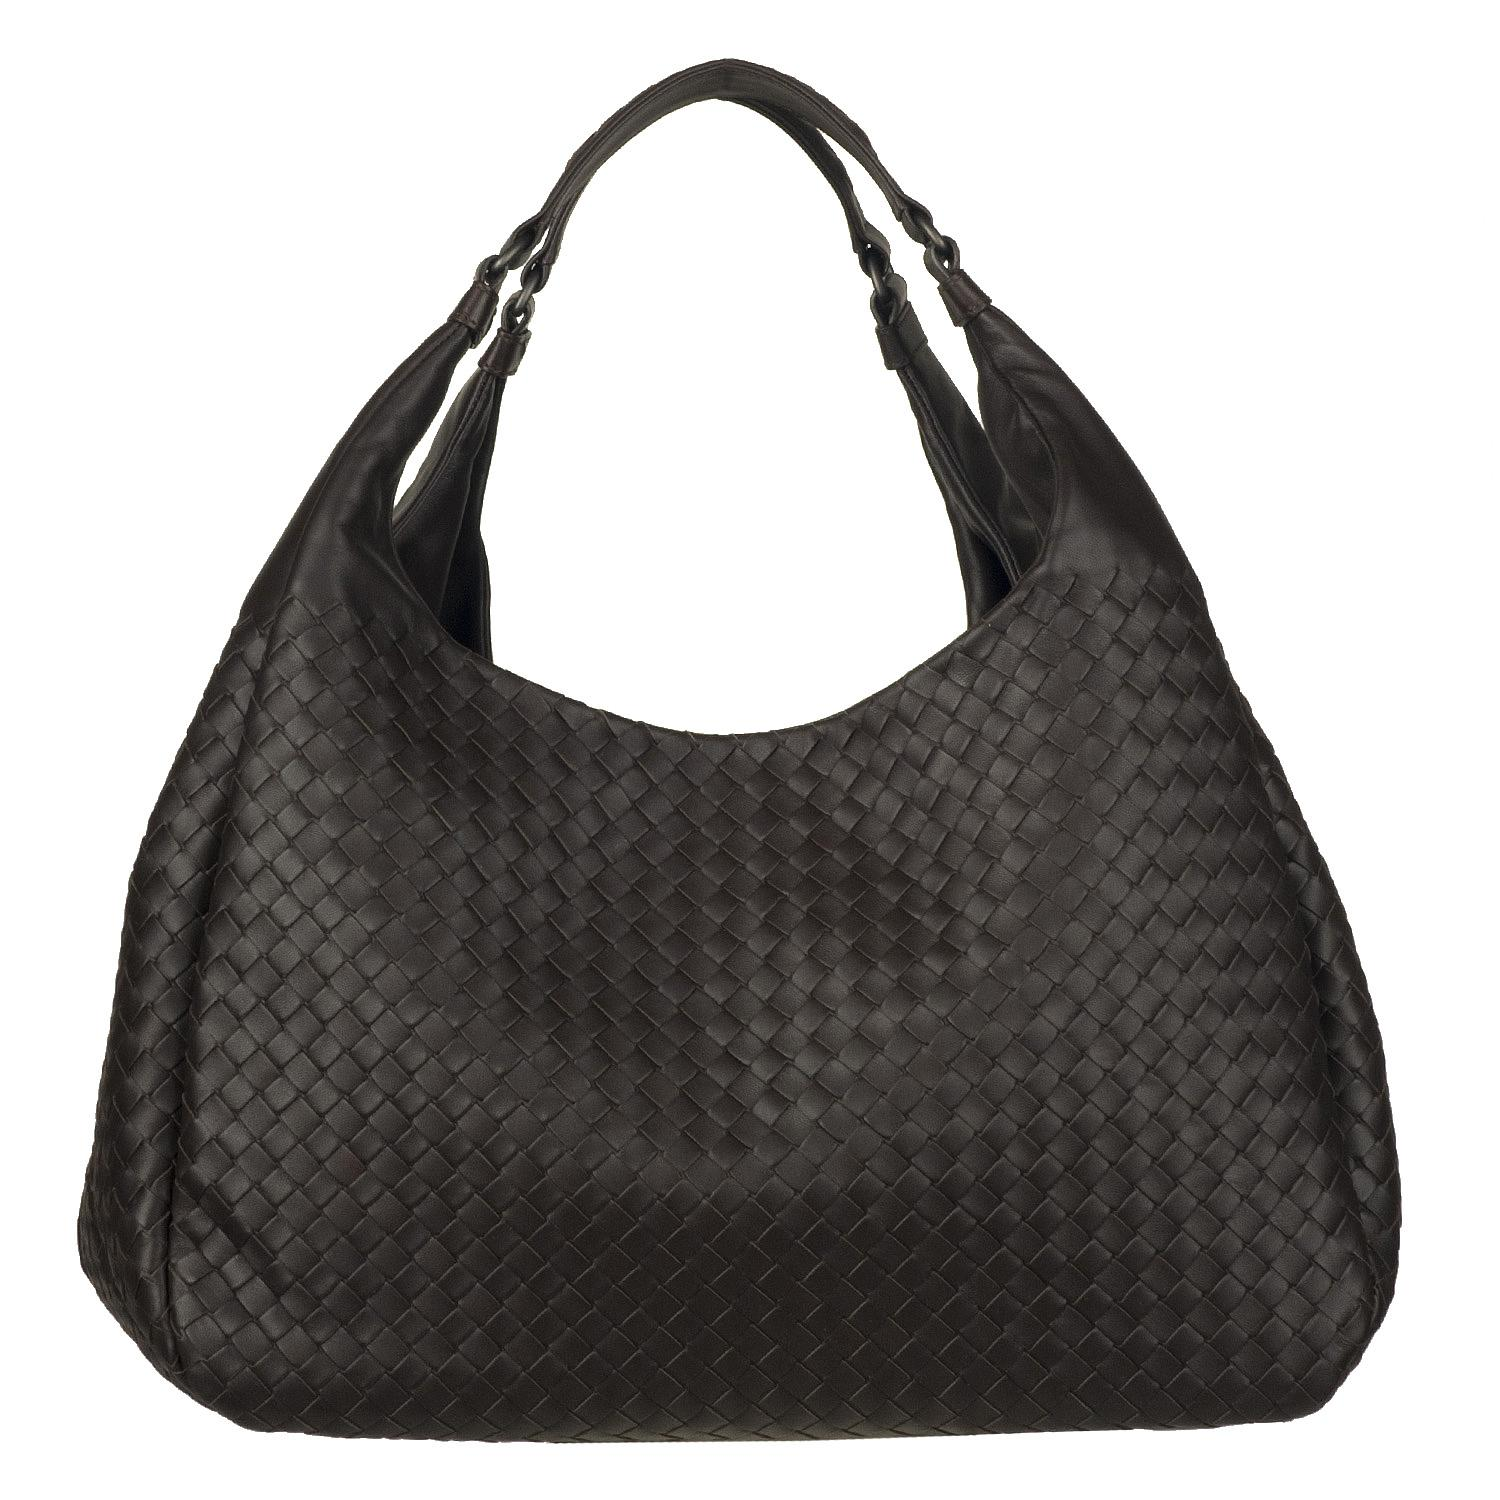 Bottega Veneta Campana Intrecciato Woven Leather Hobo Bag